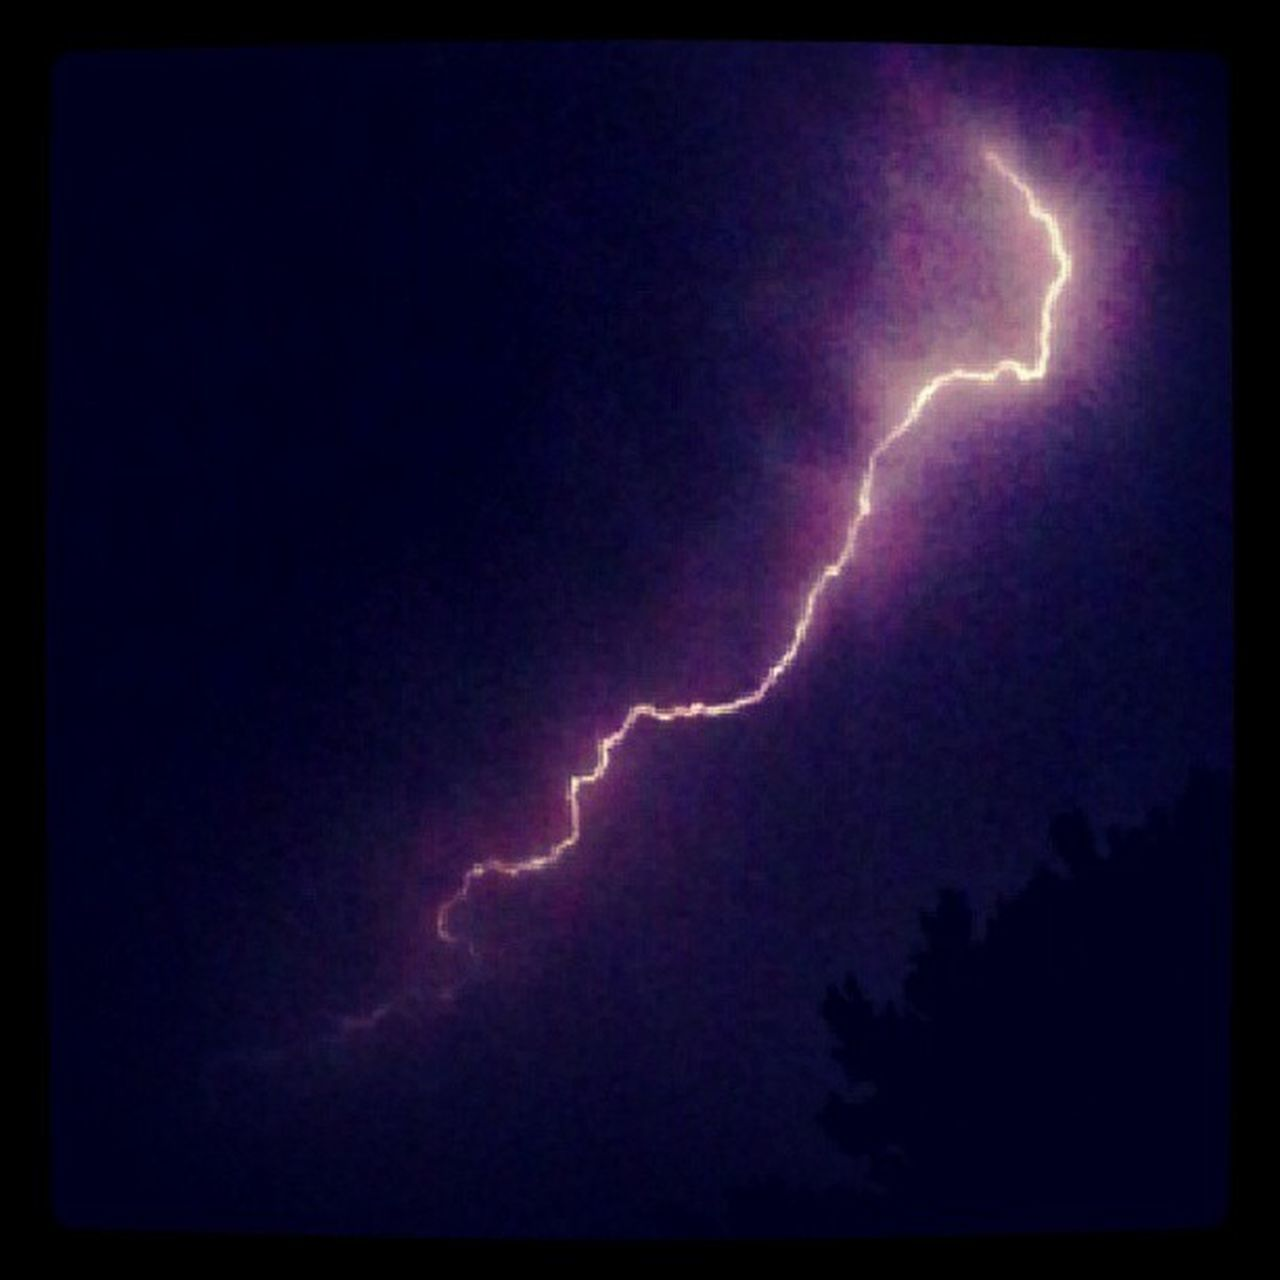 lightning, power in nature, storm, thunderstorm, forked lightning, weather, danger, dramatic sky, night, storm cloud, nature, beauty in nature, environment, vitality, electricity, outdoors, scenics, no people, illuminated, sky